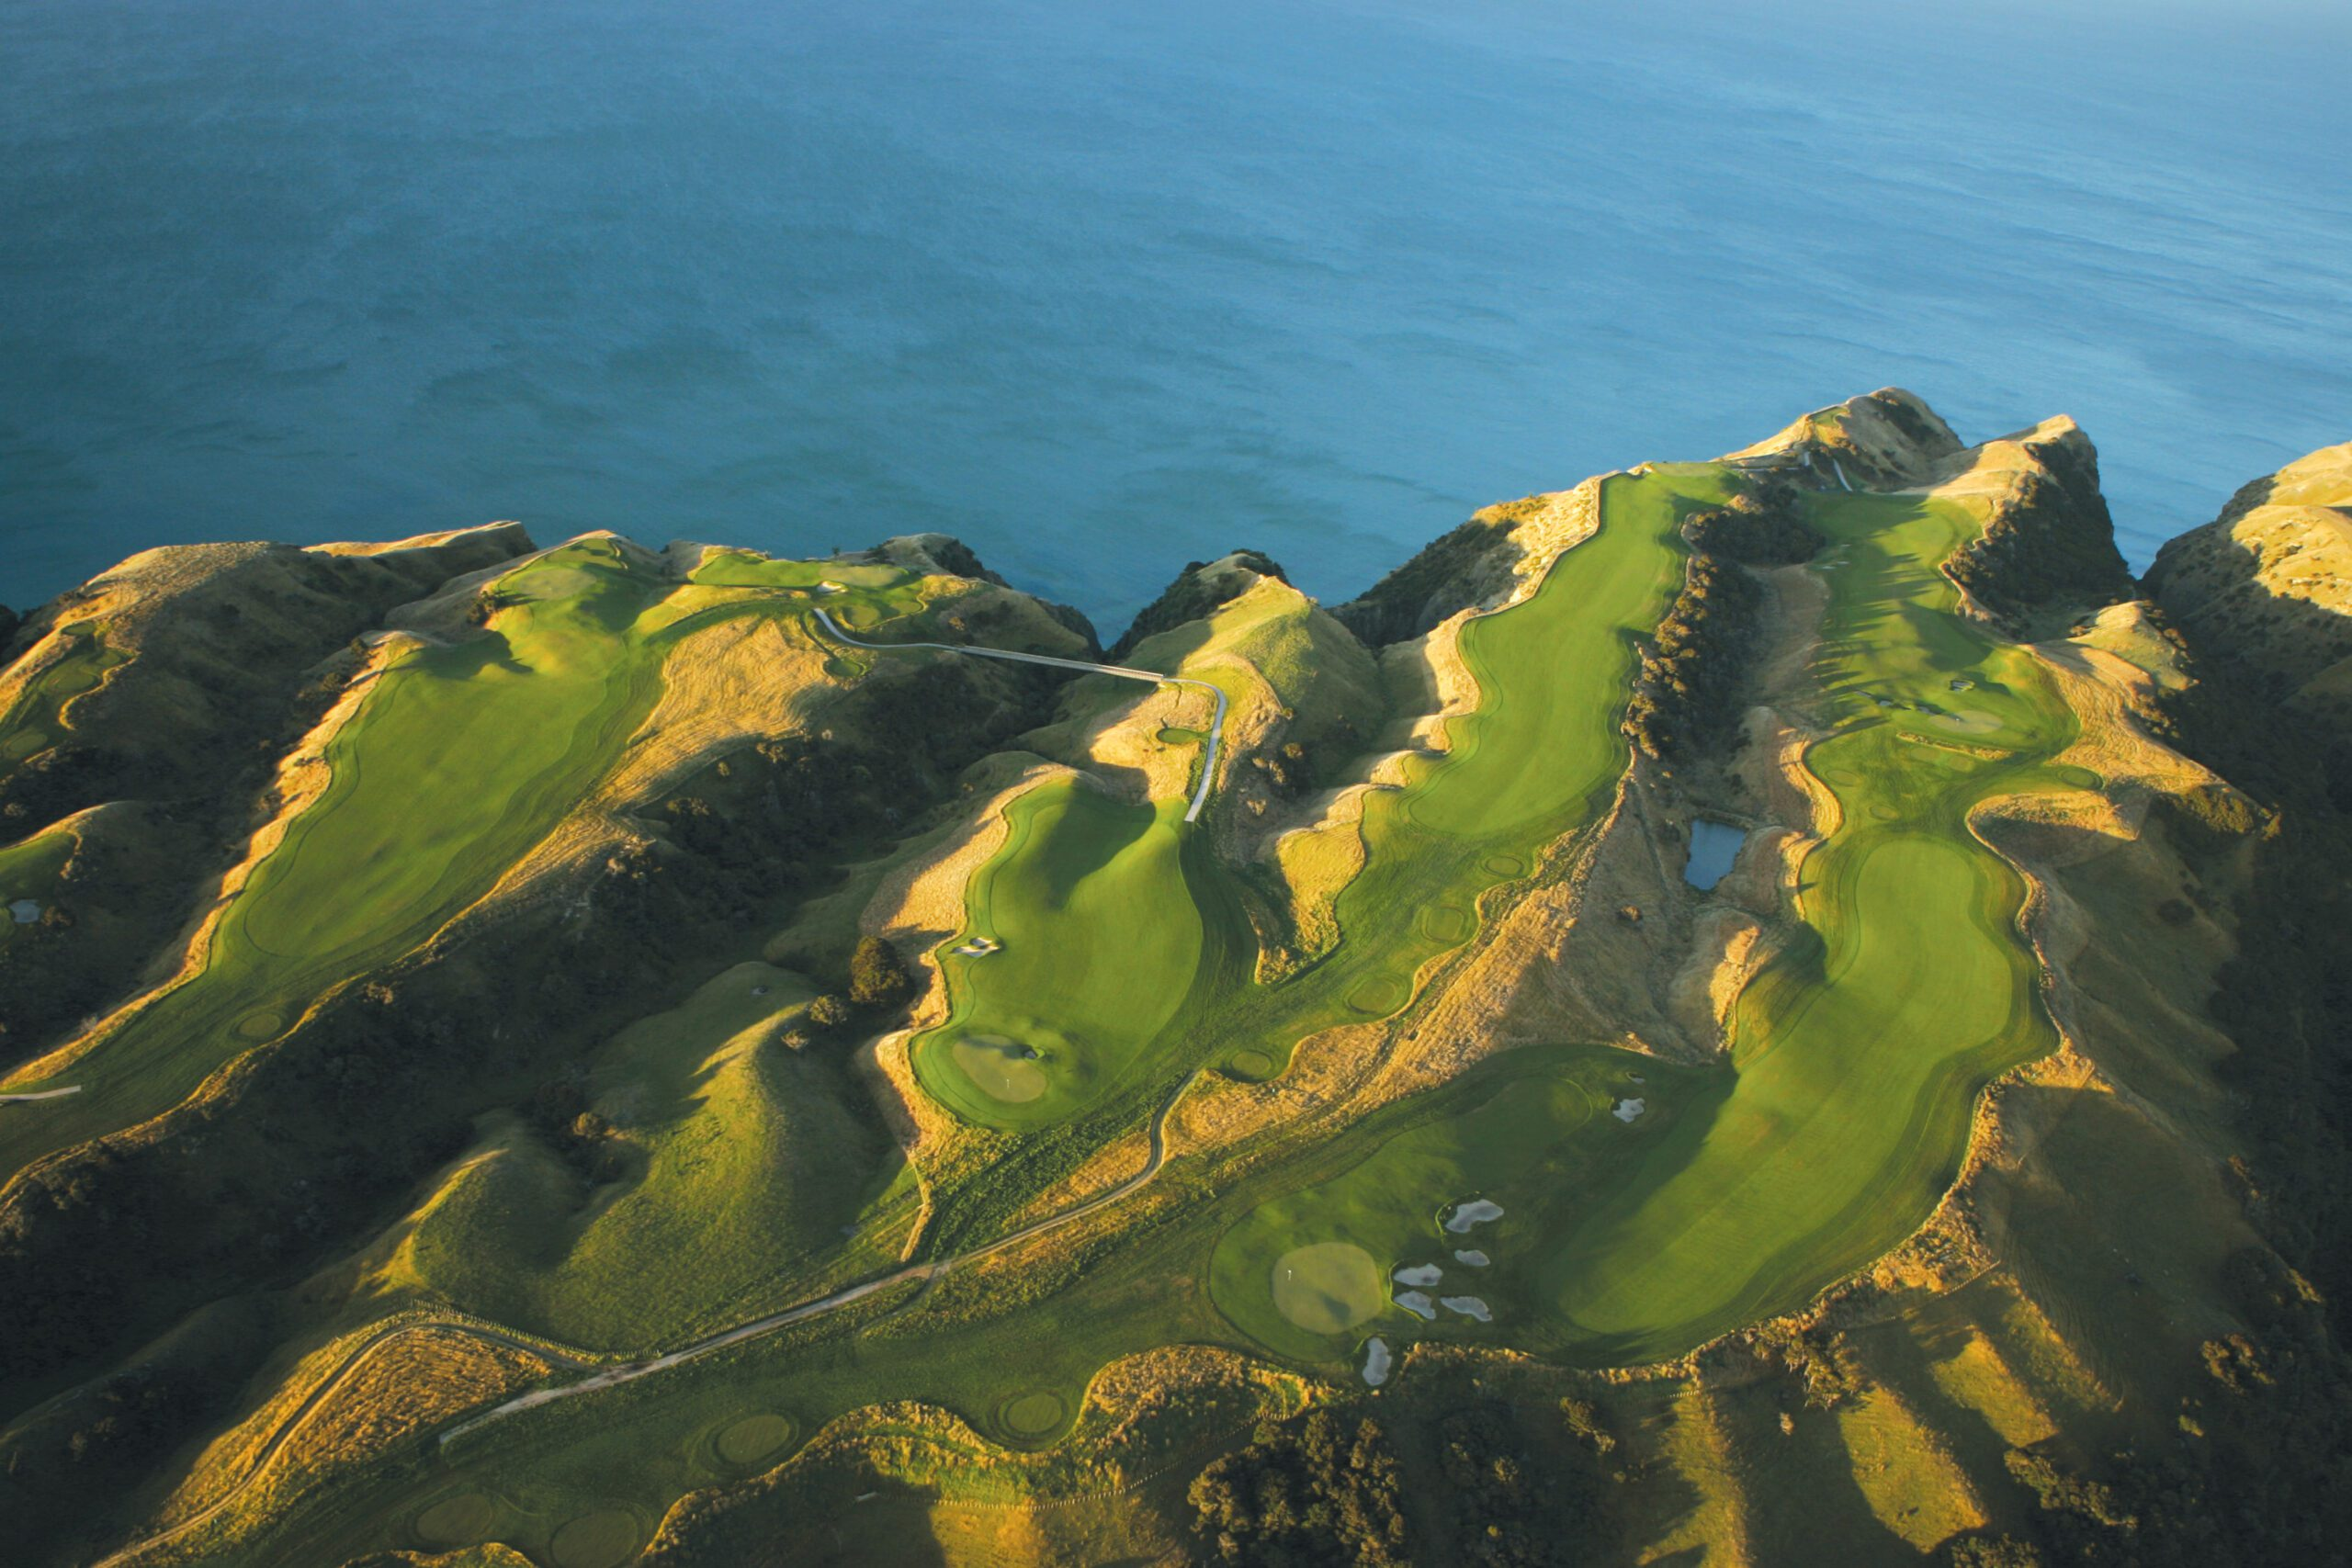 Visit Cape Kidnappers Golf Course on your next golf safari